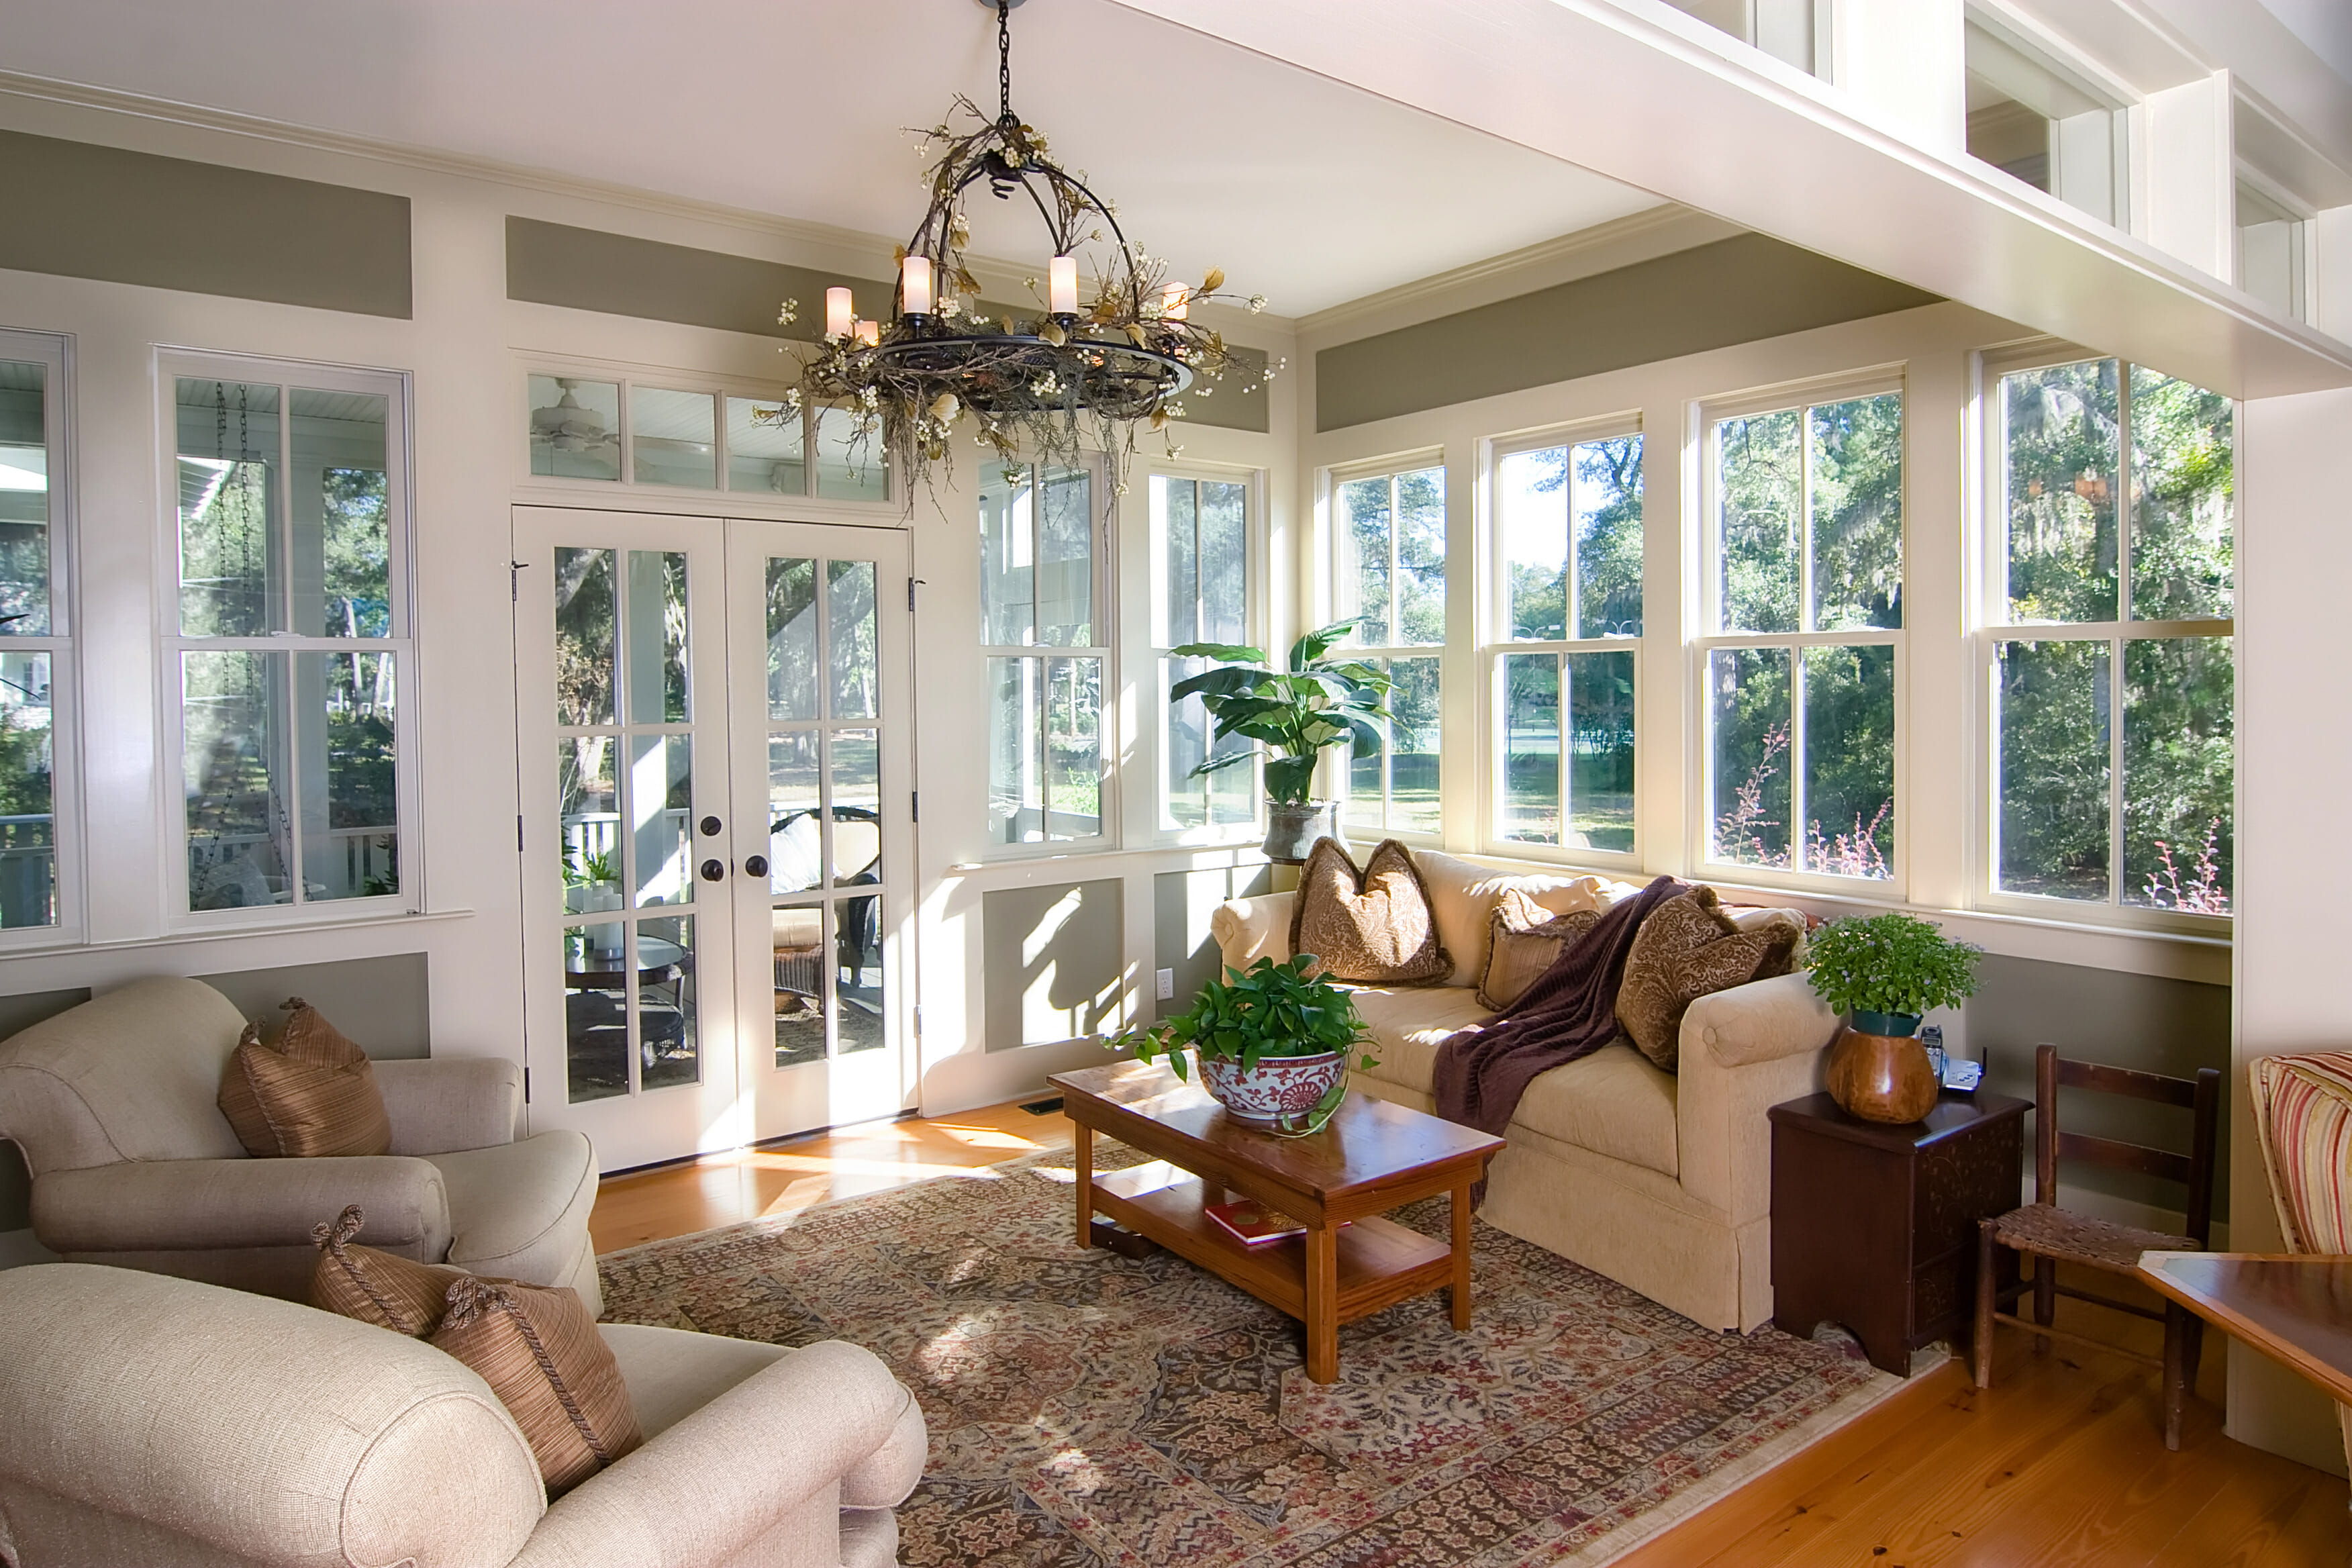 Small sunrooms ideas Decorating Ideas Beautiful Sunrooms Of Small Sunroom Decorating Ideas Joy Studio Design Acnn Decor Beautiful Sunrooms Of Small Sunroom Decorating 24297 Acnn Decor